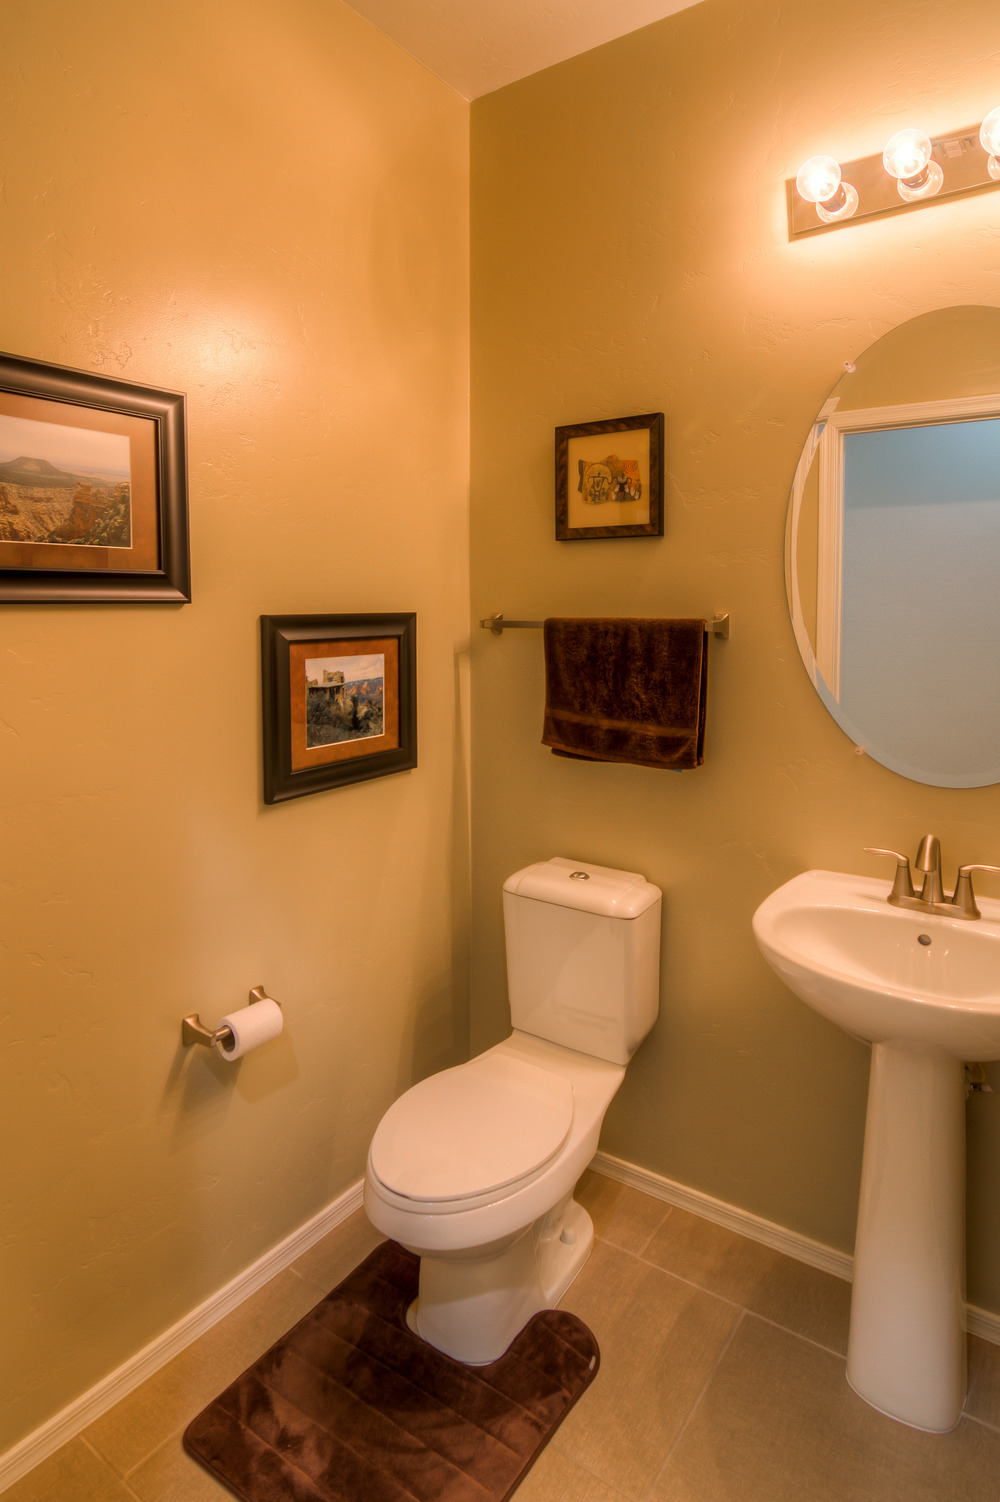 9 Bathroom 1.jpg